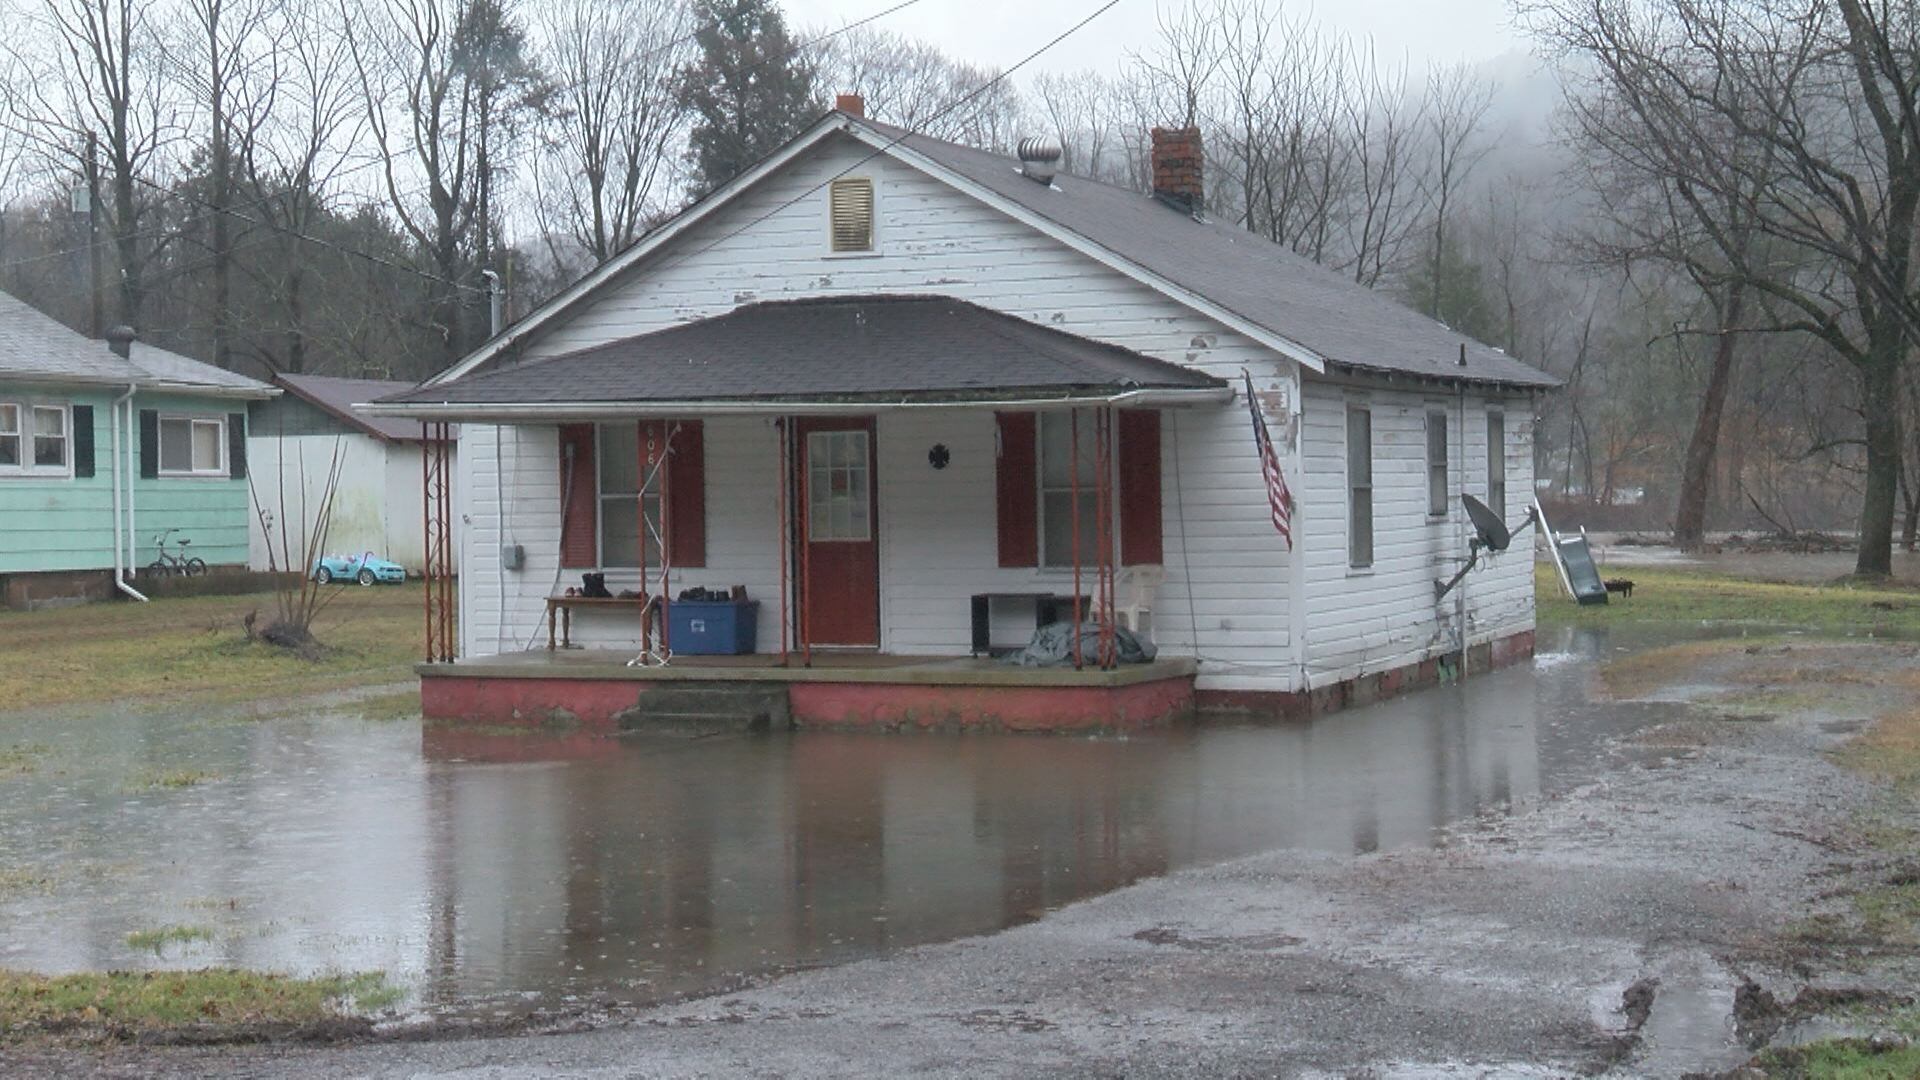 This is just one of several houses that were surrounded by water on Sunday.jpg